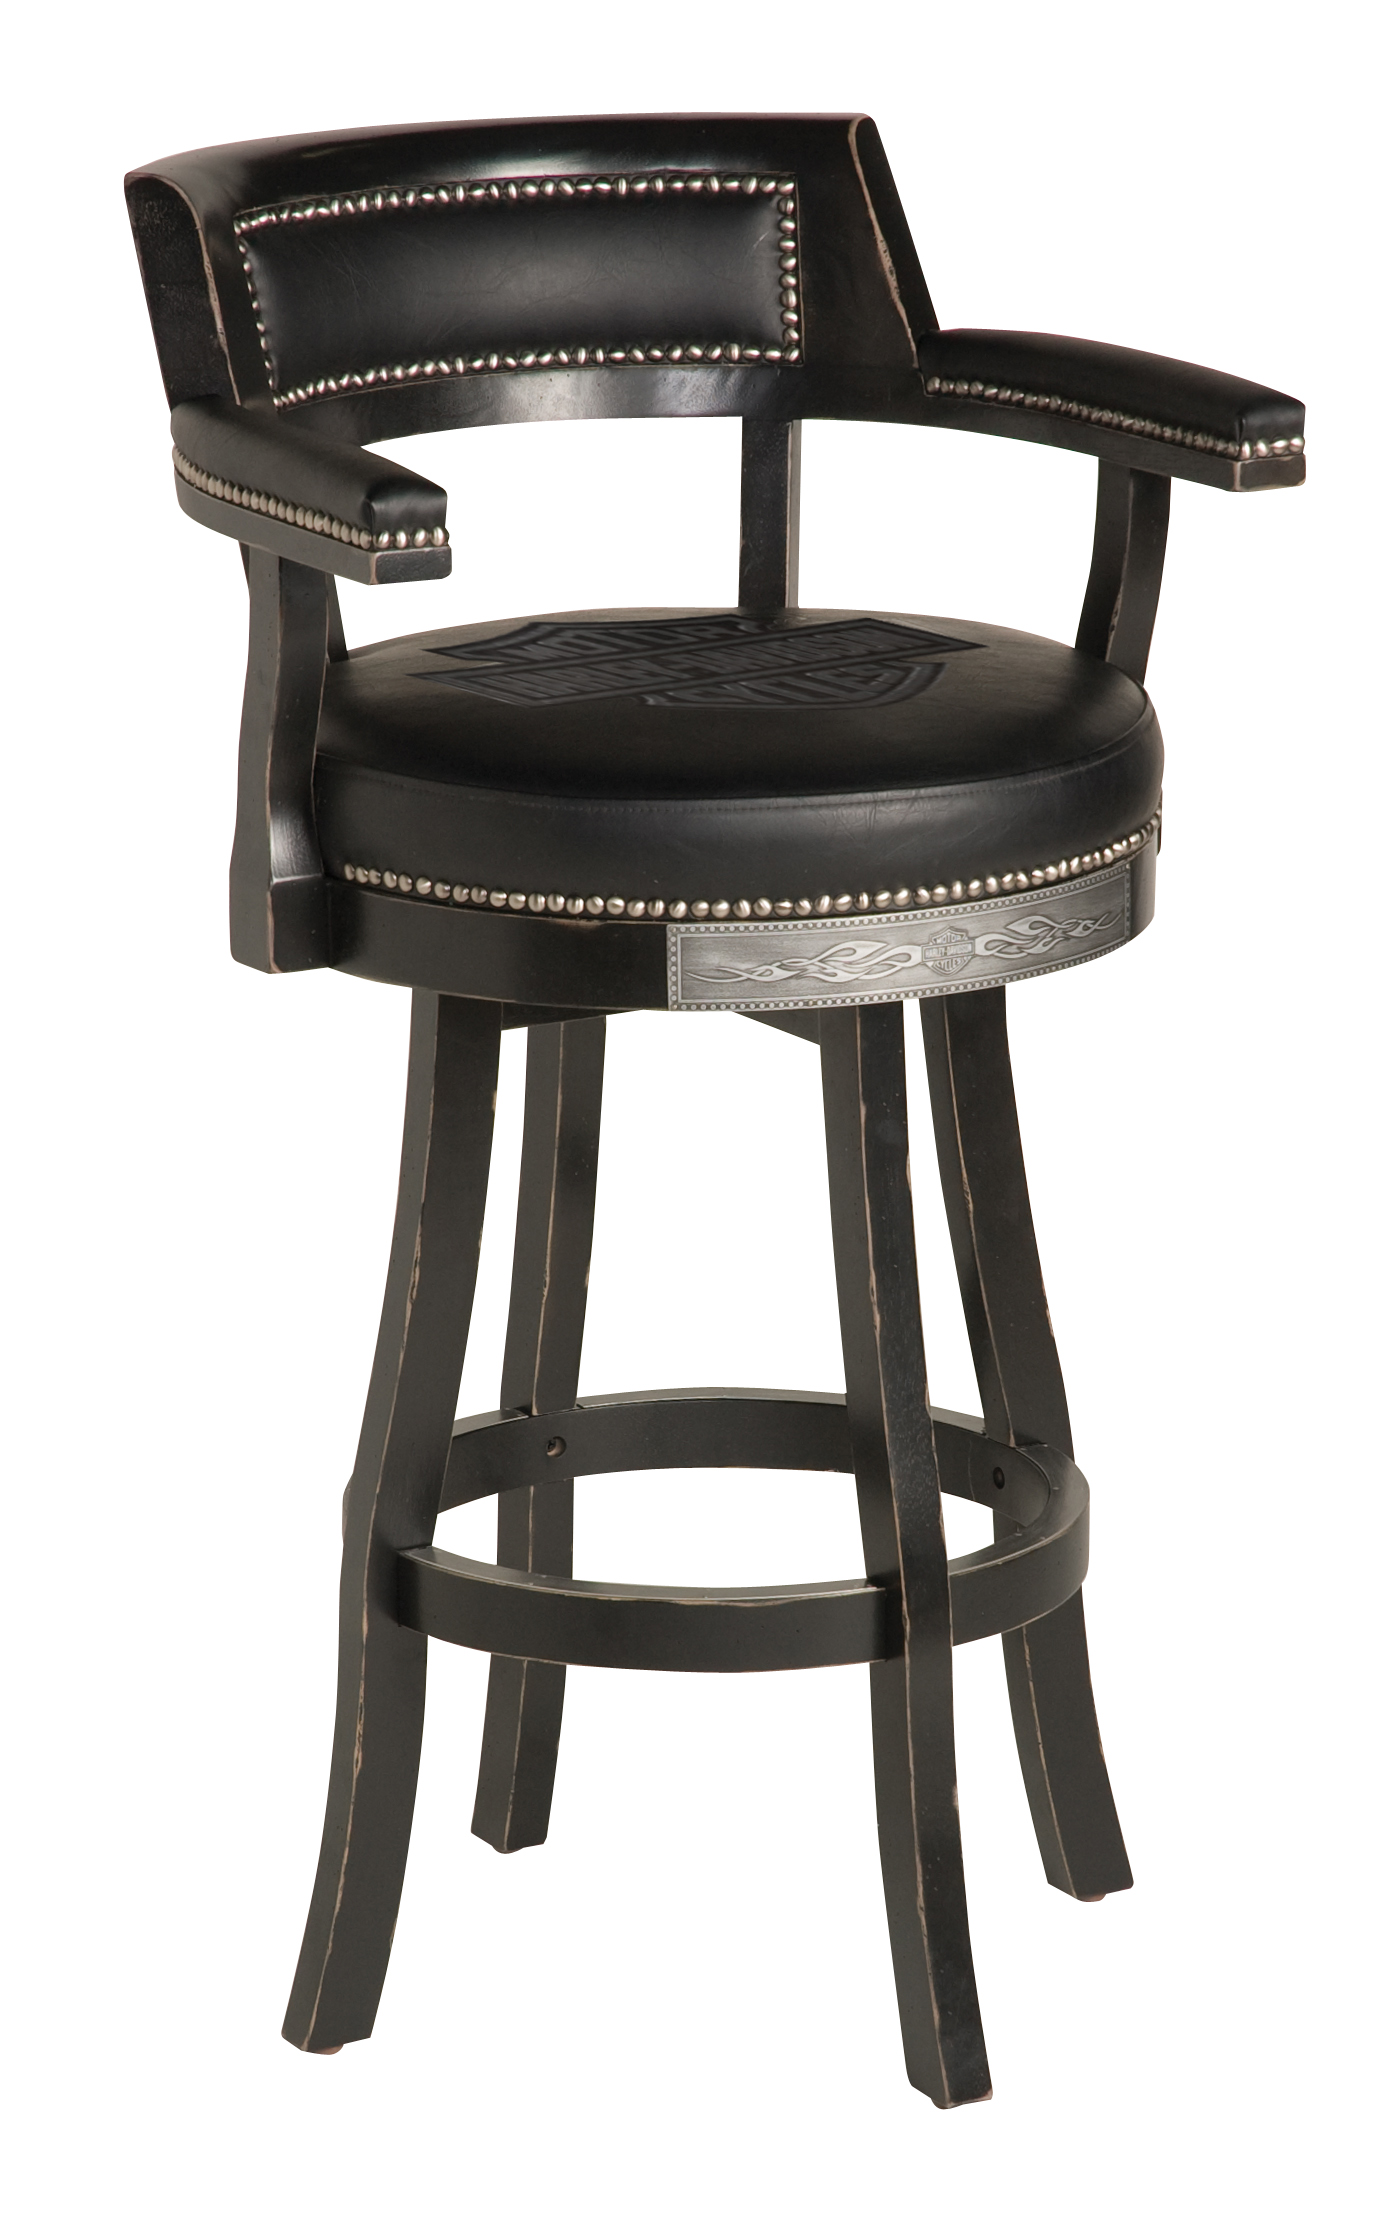 Harley-Davidson B&S Flames Bar Stool w/ Backrest Vintage Black Finish HDL-13110-V